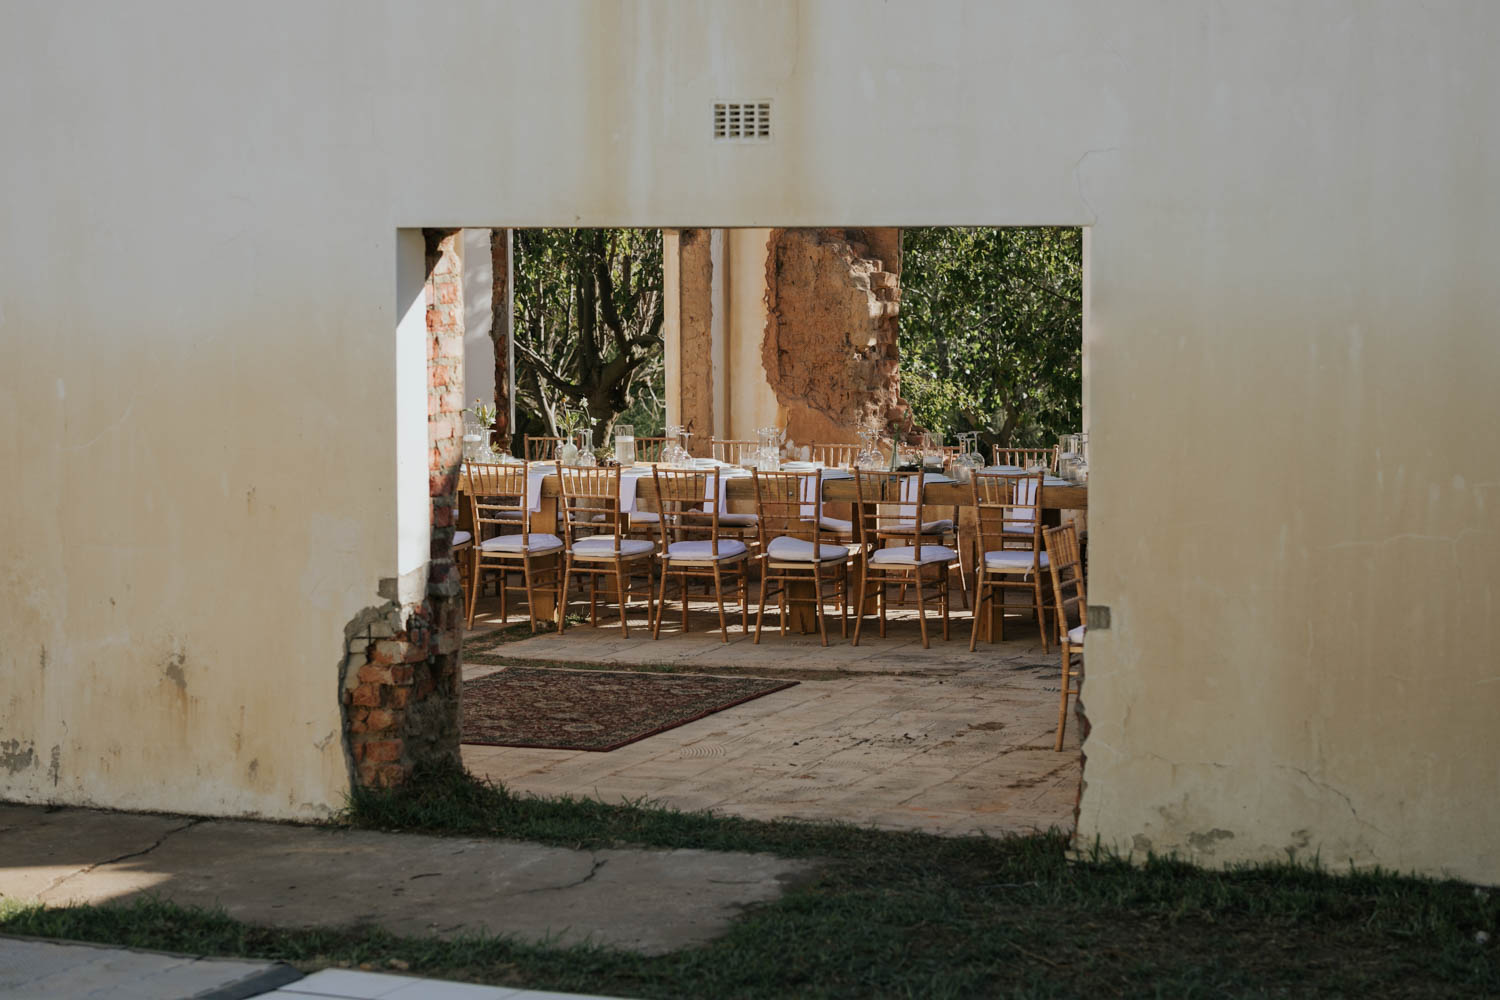 Simple wedding decor, wooden chairs and white linen table cloths setup in the ruins of an old farm house.